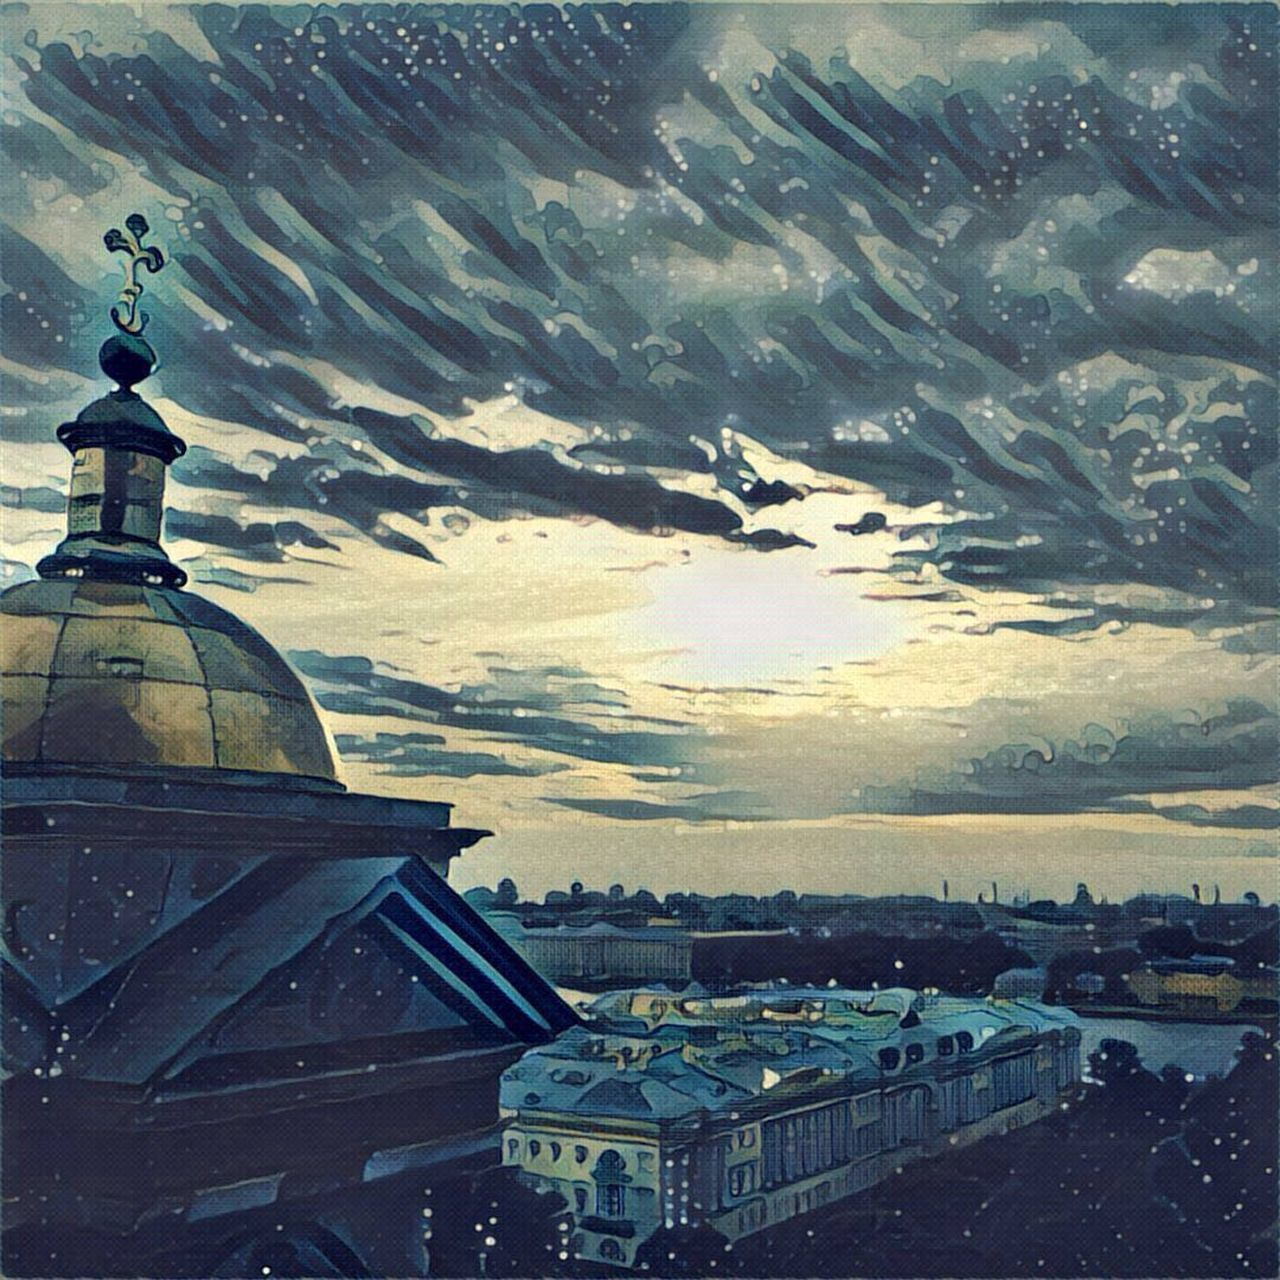 Saint Petersburg Saint Isaac's Cathedral Isaakievskiy Sobor Architecture Cityscape Sky Tourism Prisma Built Structure Sea City View